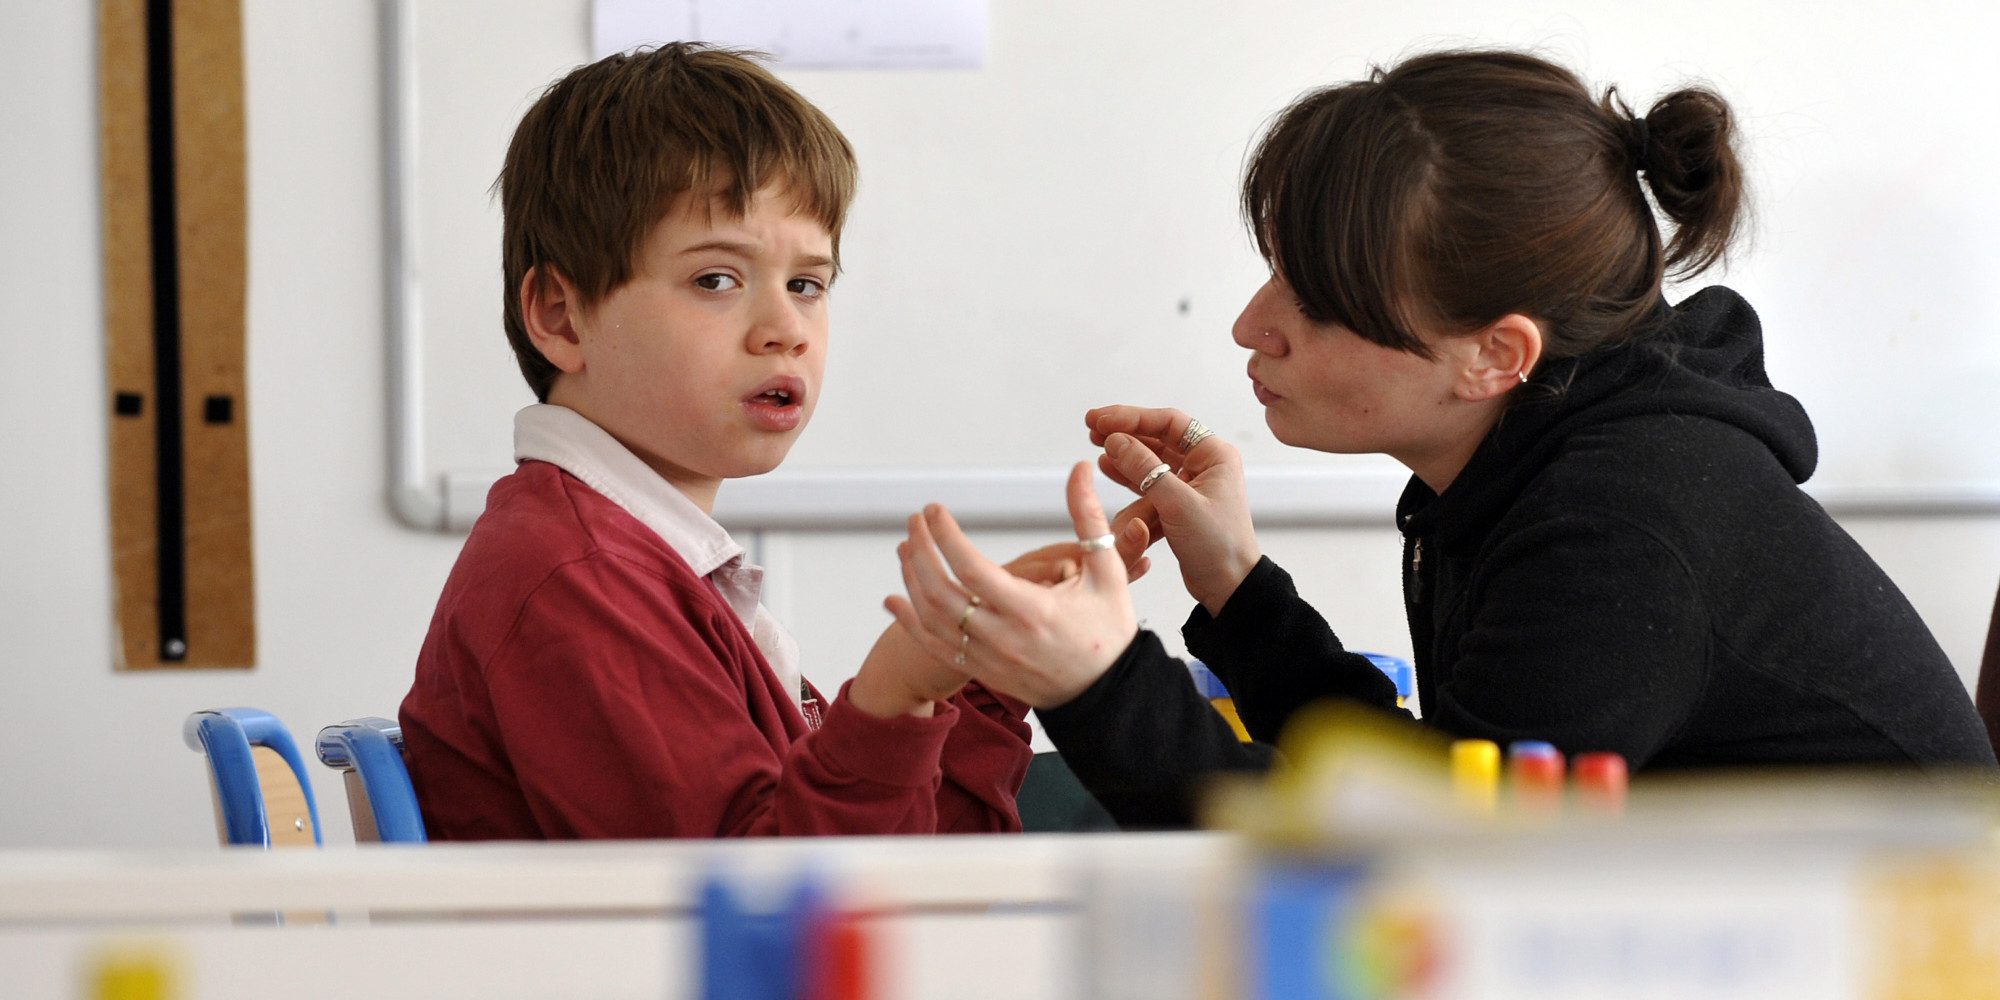 """PARIS - APRIL 24: A teacher deals with an autist child, on April 24, 2008 in Paris at the medical--educational institute """"the small victories"""", school single which uses method ABA"""" Applied Behavior Analysis"""". The future plan on the autism will be presented on May 16, 2008, the national day of autism, and will comprise more new places of reception the precedent, who counted 2,800 of them, according to the declarations of the Solidarity and Minister for Labour Xavier Bertrand, on April 2, 2008, which regretted """"of the years of delay"""" on the matter. (Photo by FRANCK FIFE/AFP/Getty Images)"""